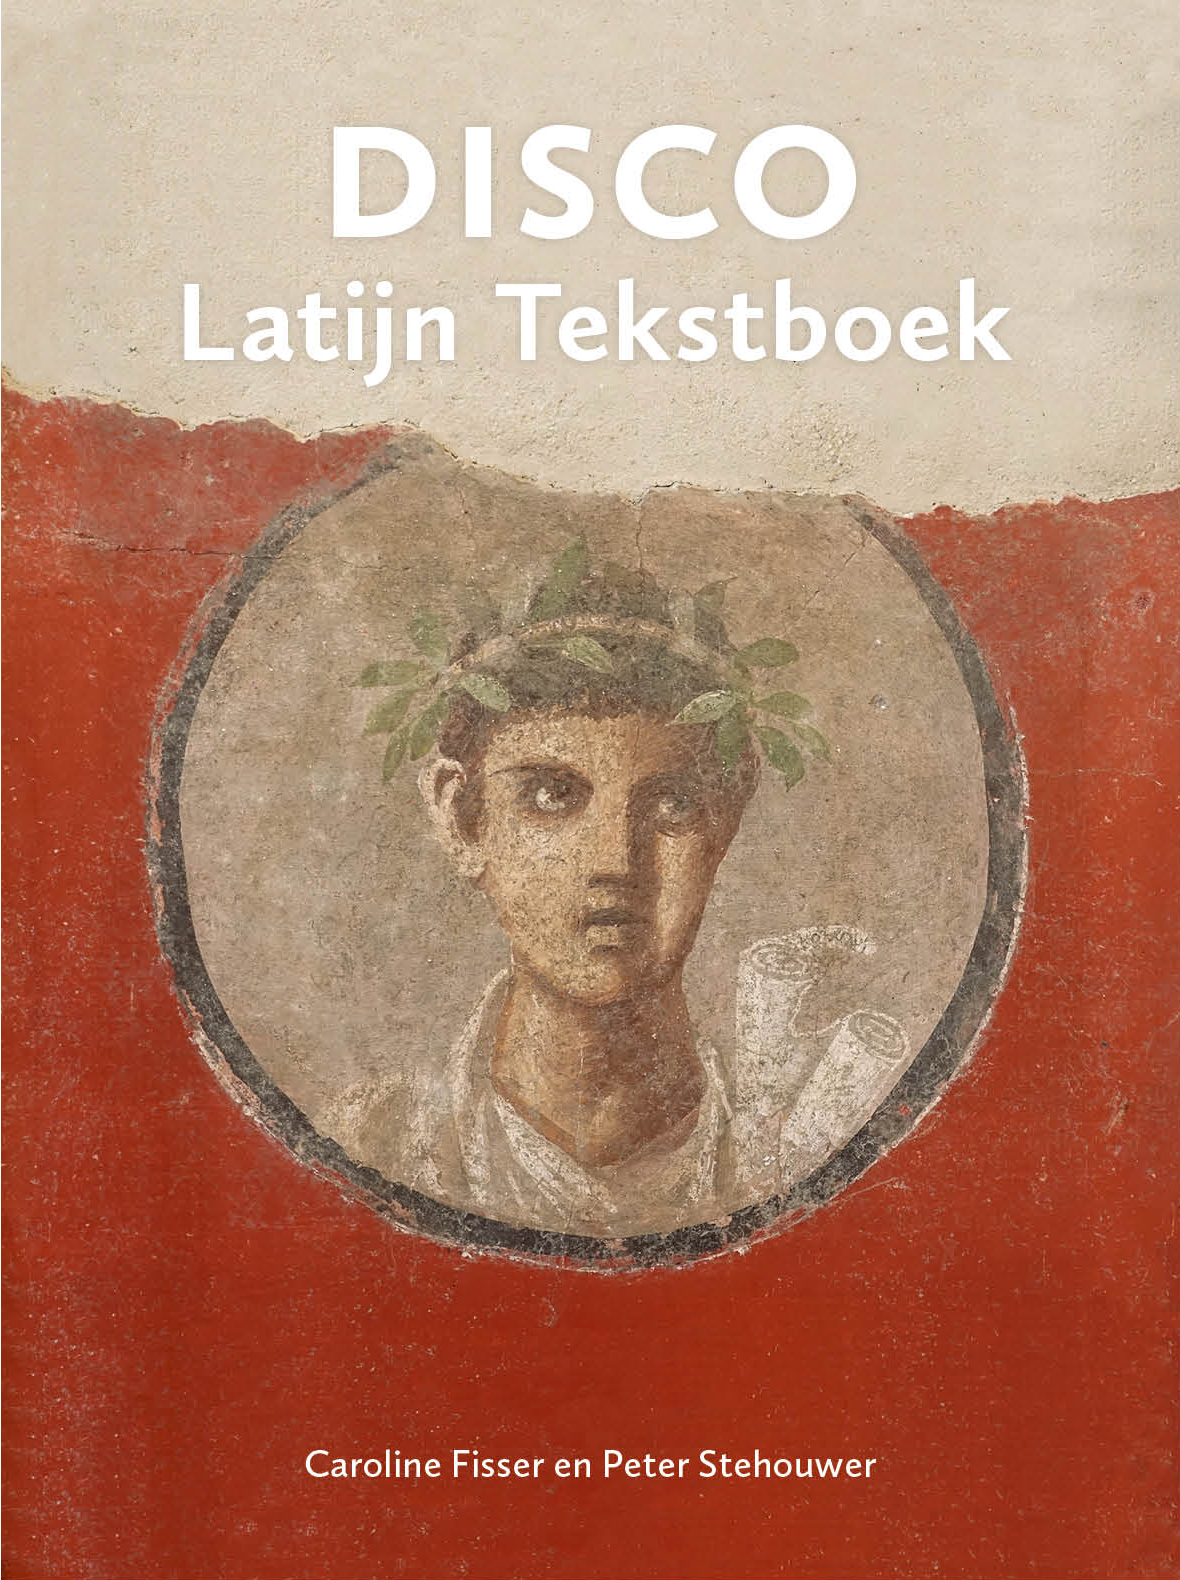 Disco Latijn Tekstboek